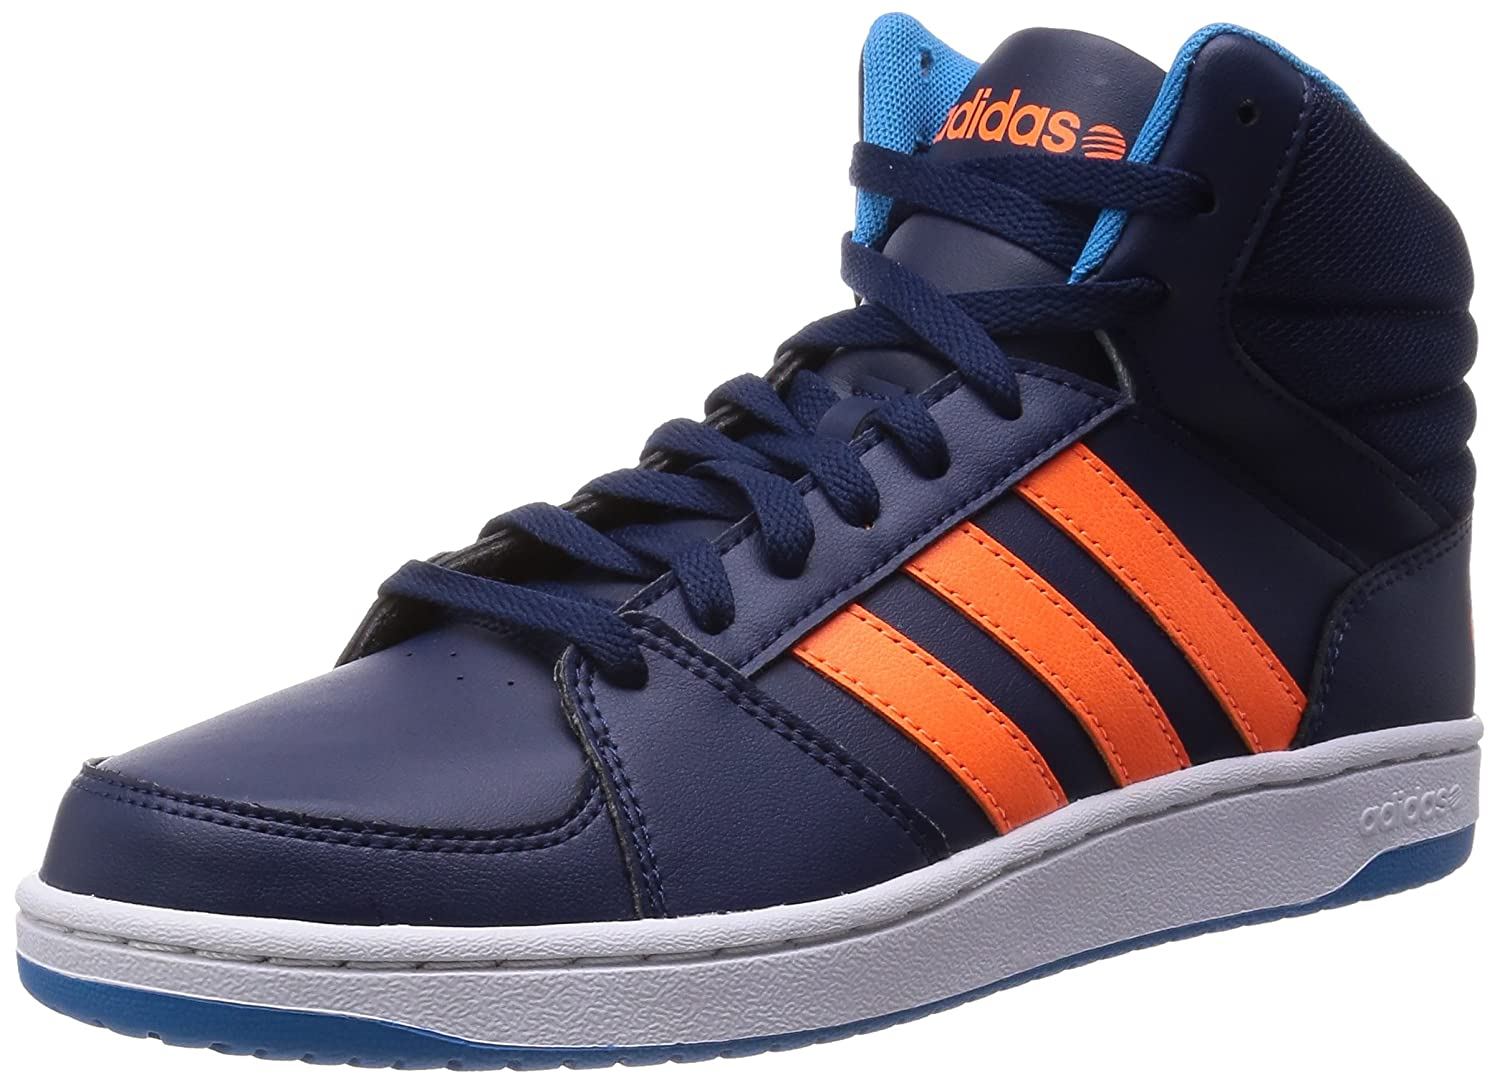 brand new 030bc 75271 adidas NEO Men s High Top Trainers Basketball Shoes Trend shoes HOOPS VS  MID - Blue (Blue), UK 12.5  Amazon.co.uk  Sports   Outdoors